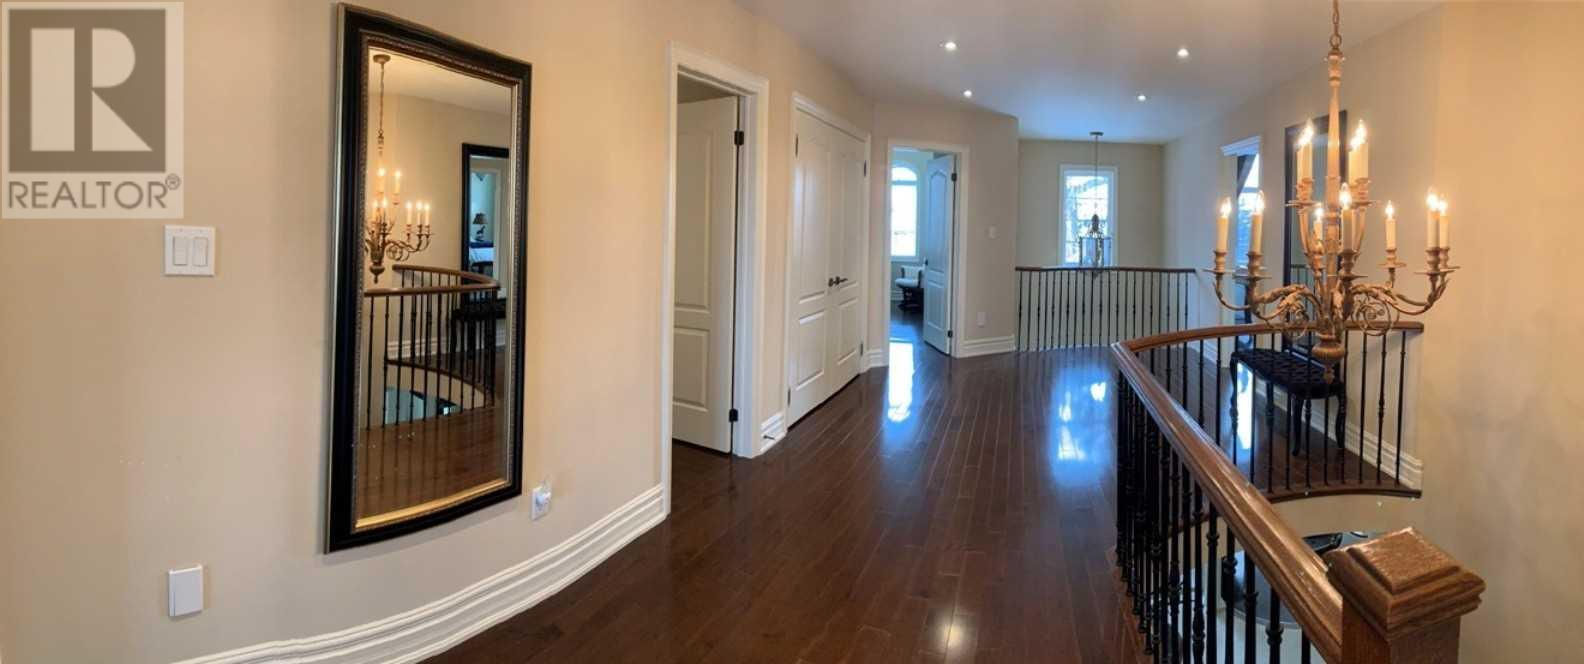 1371 Hickory Rd, Mississauga, Ontario  L4W 1L4 - Photo 11 - W4669374